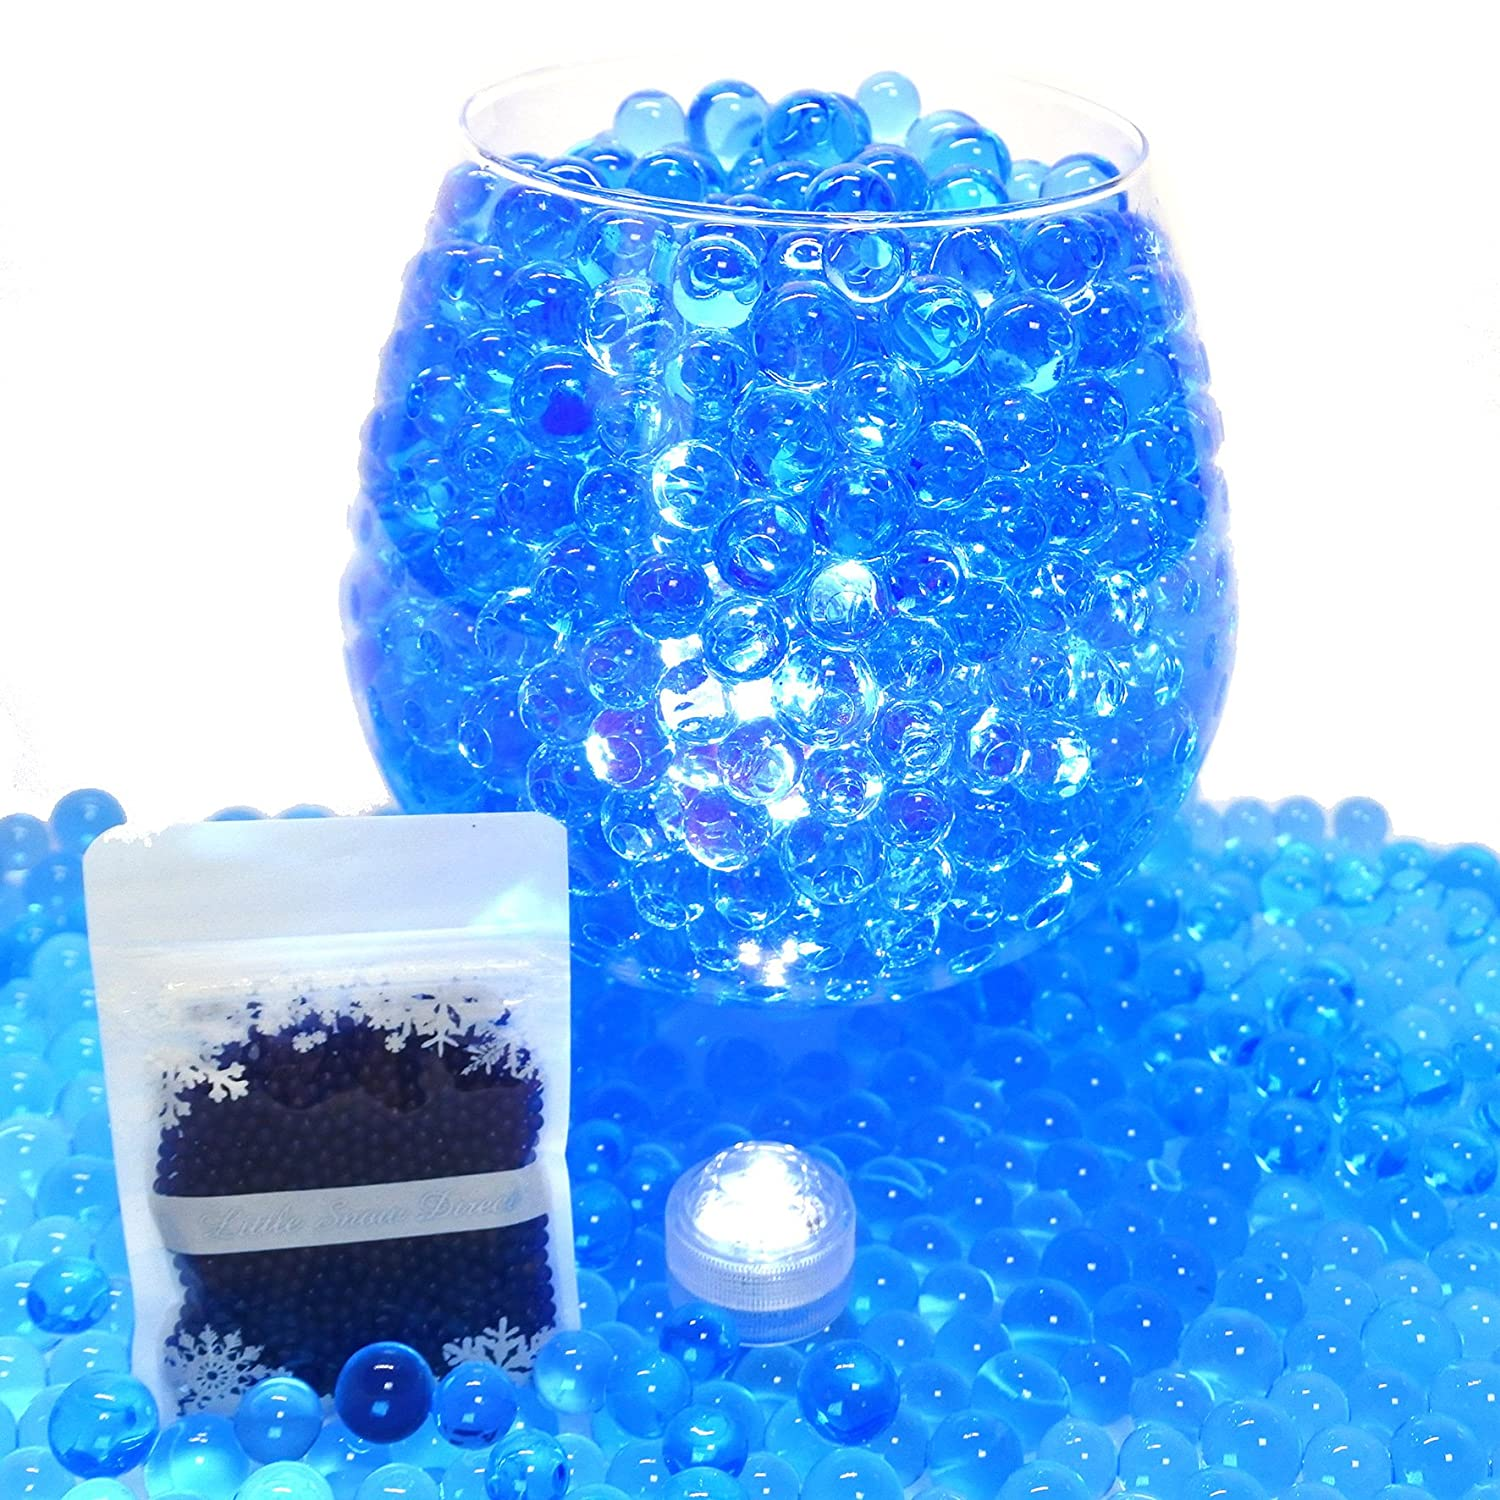 20g Aqua Water Crystal Beads Crystal Soil Gems Bio Gel Balls Wedding Vase Decoration - Waterproof LED Light Included - Mint Little Snow Direct